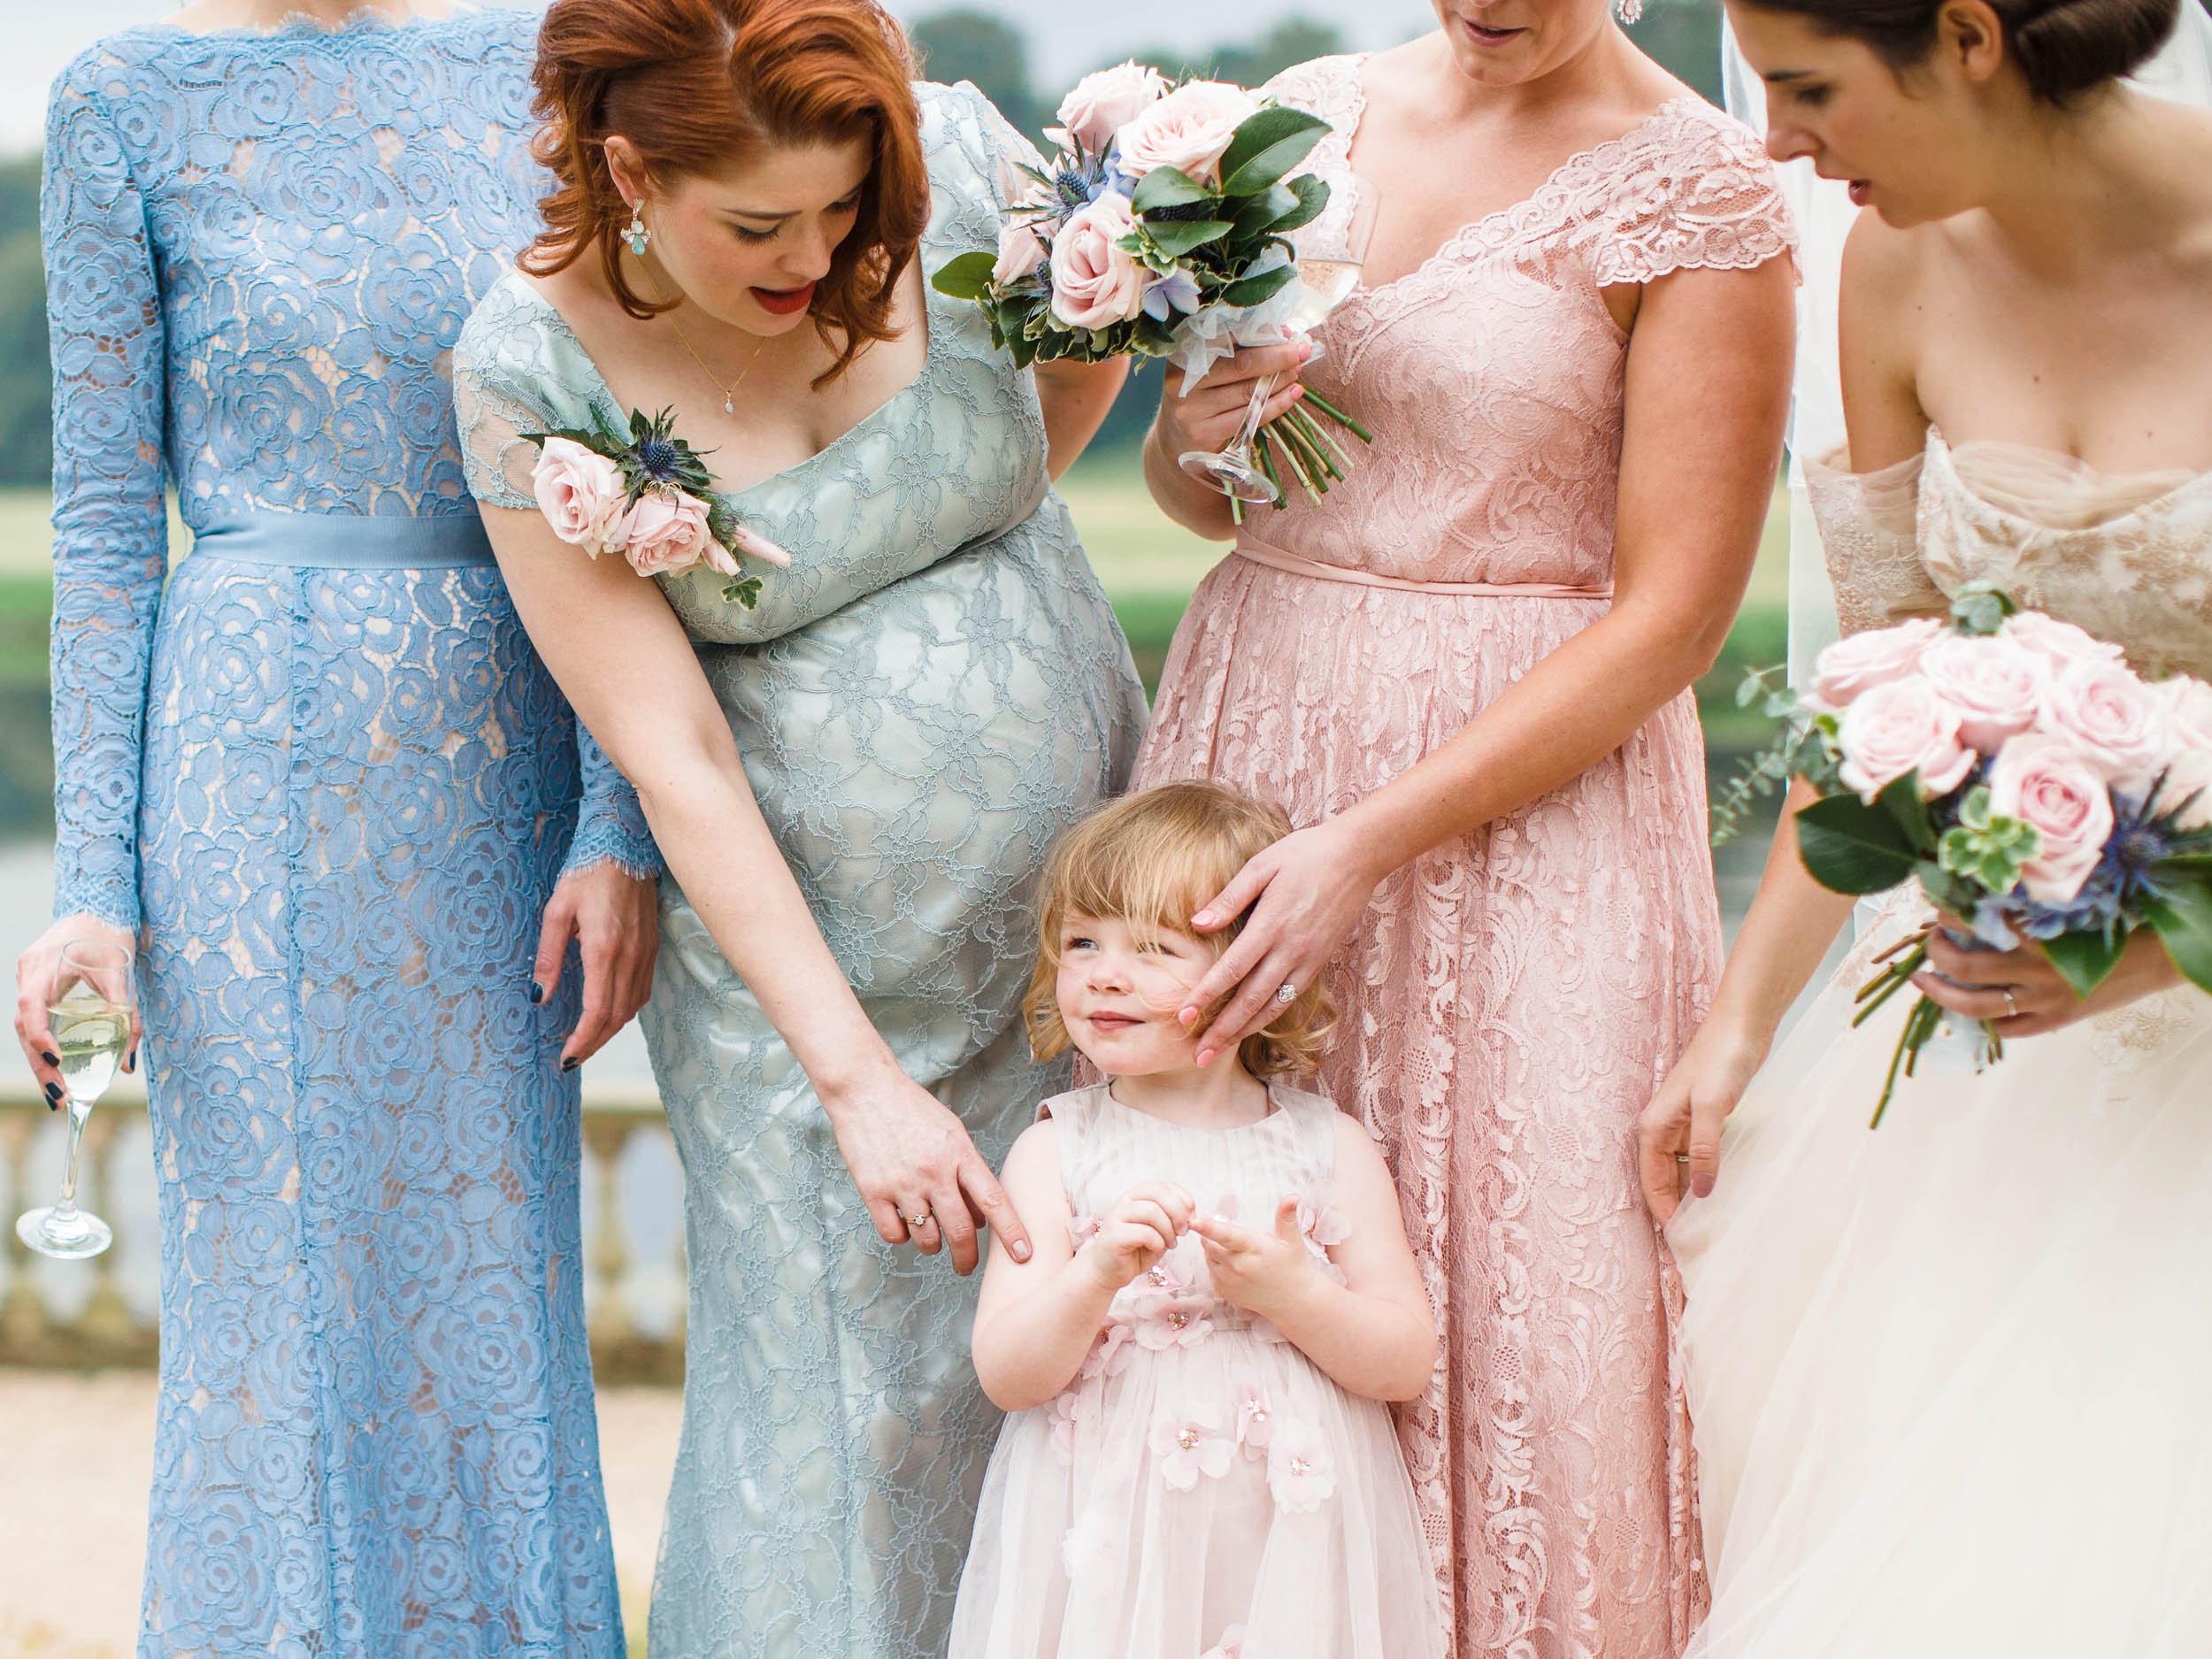 Amy O'Boyle Photography- Destination & UK Fine Art Film Wedding Photographer- Stoneleigh Abbey Wedding-2.jpg